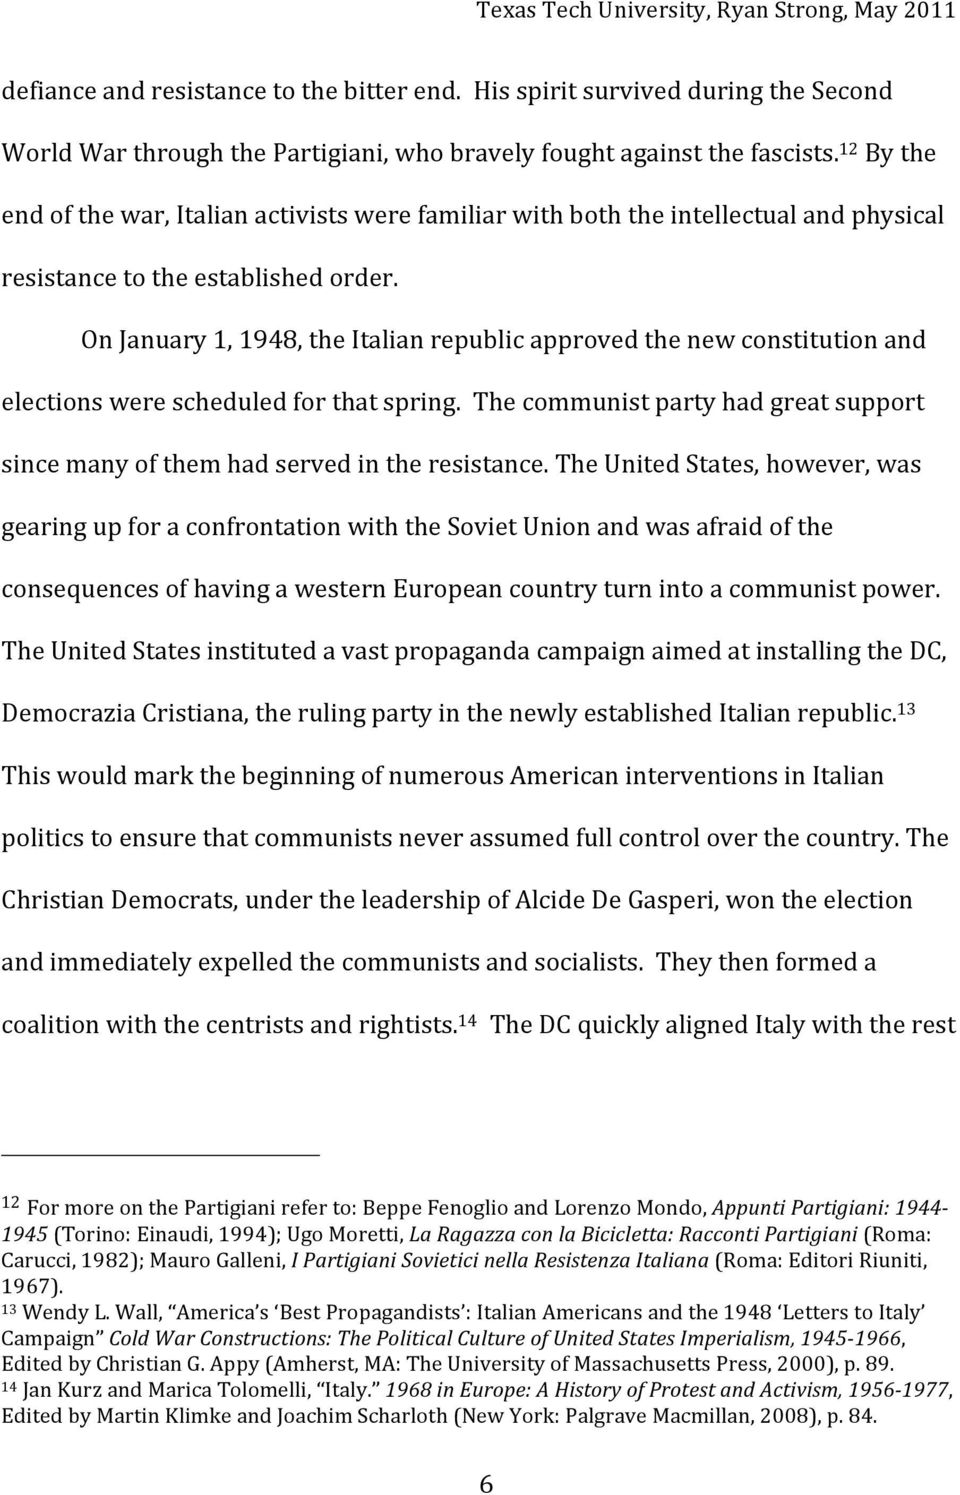 OnJanuary1,1948,theItalianrepublicapprovedthenewconstitutionand electionswerescheduledforthatspring.thecommunistpartyhadgreatsupport sincemanyofthemhadservedintheresistance.